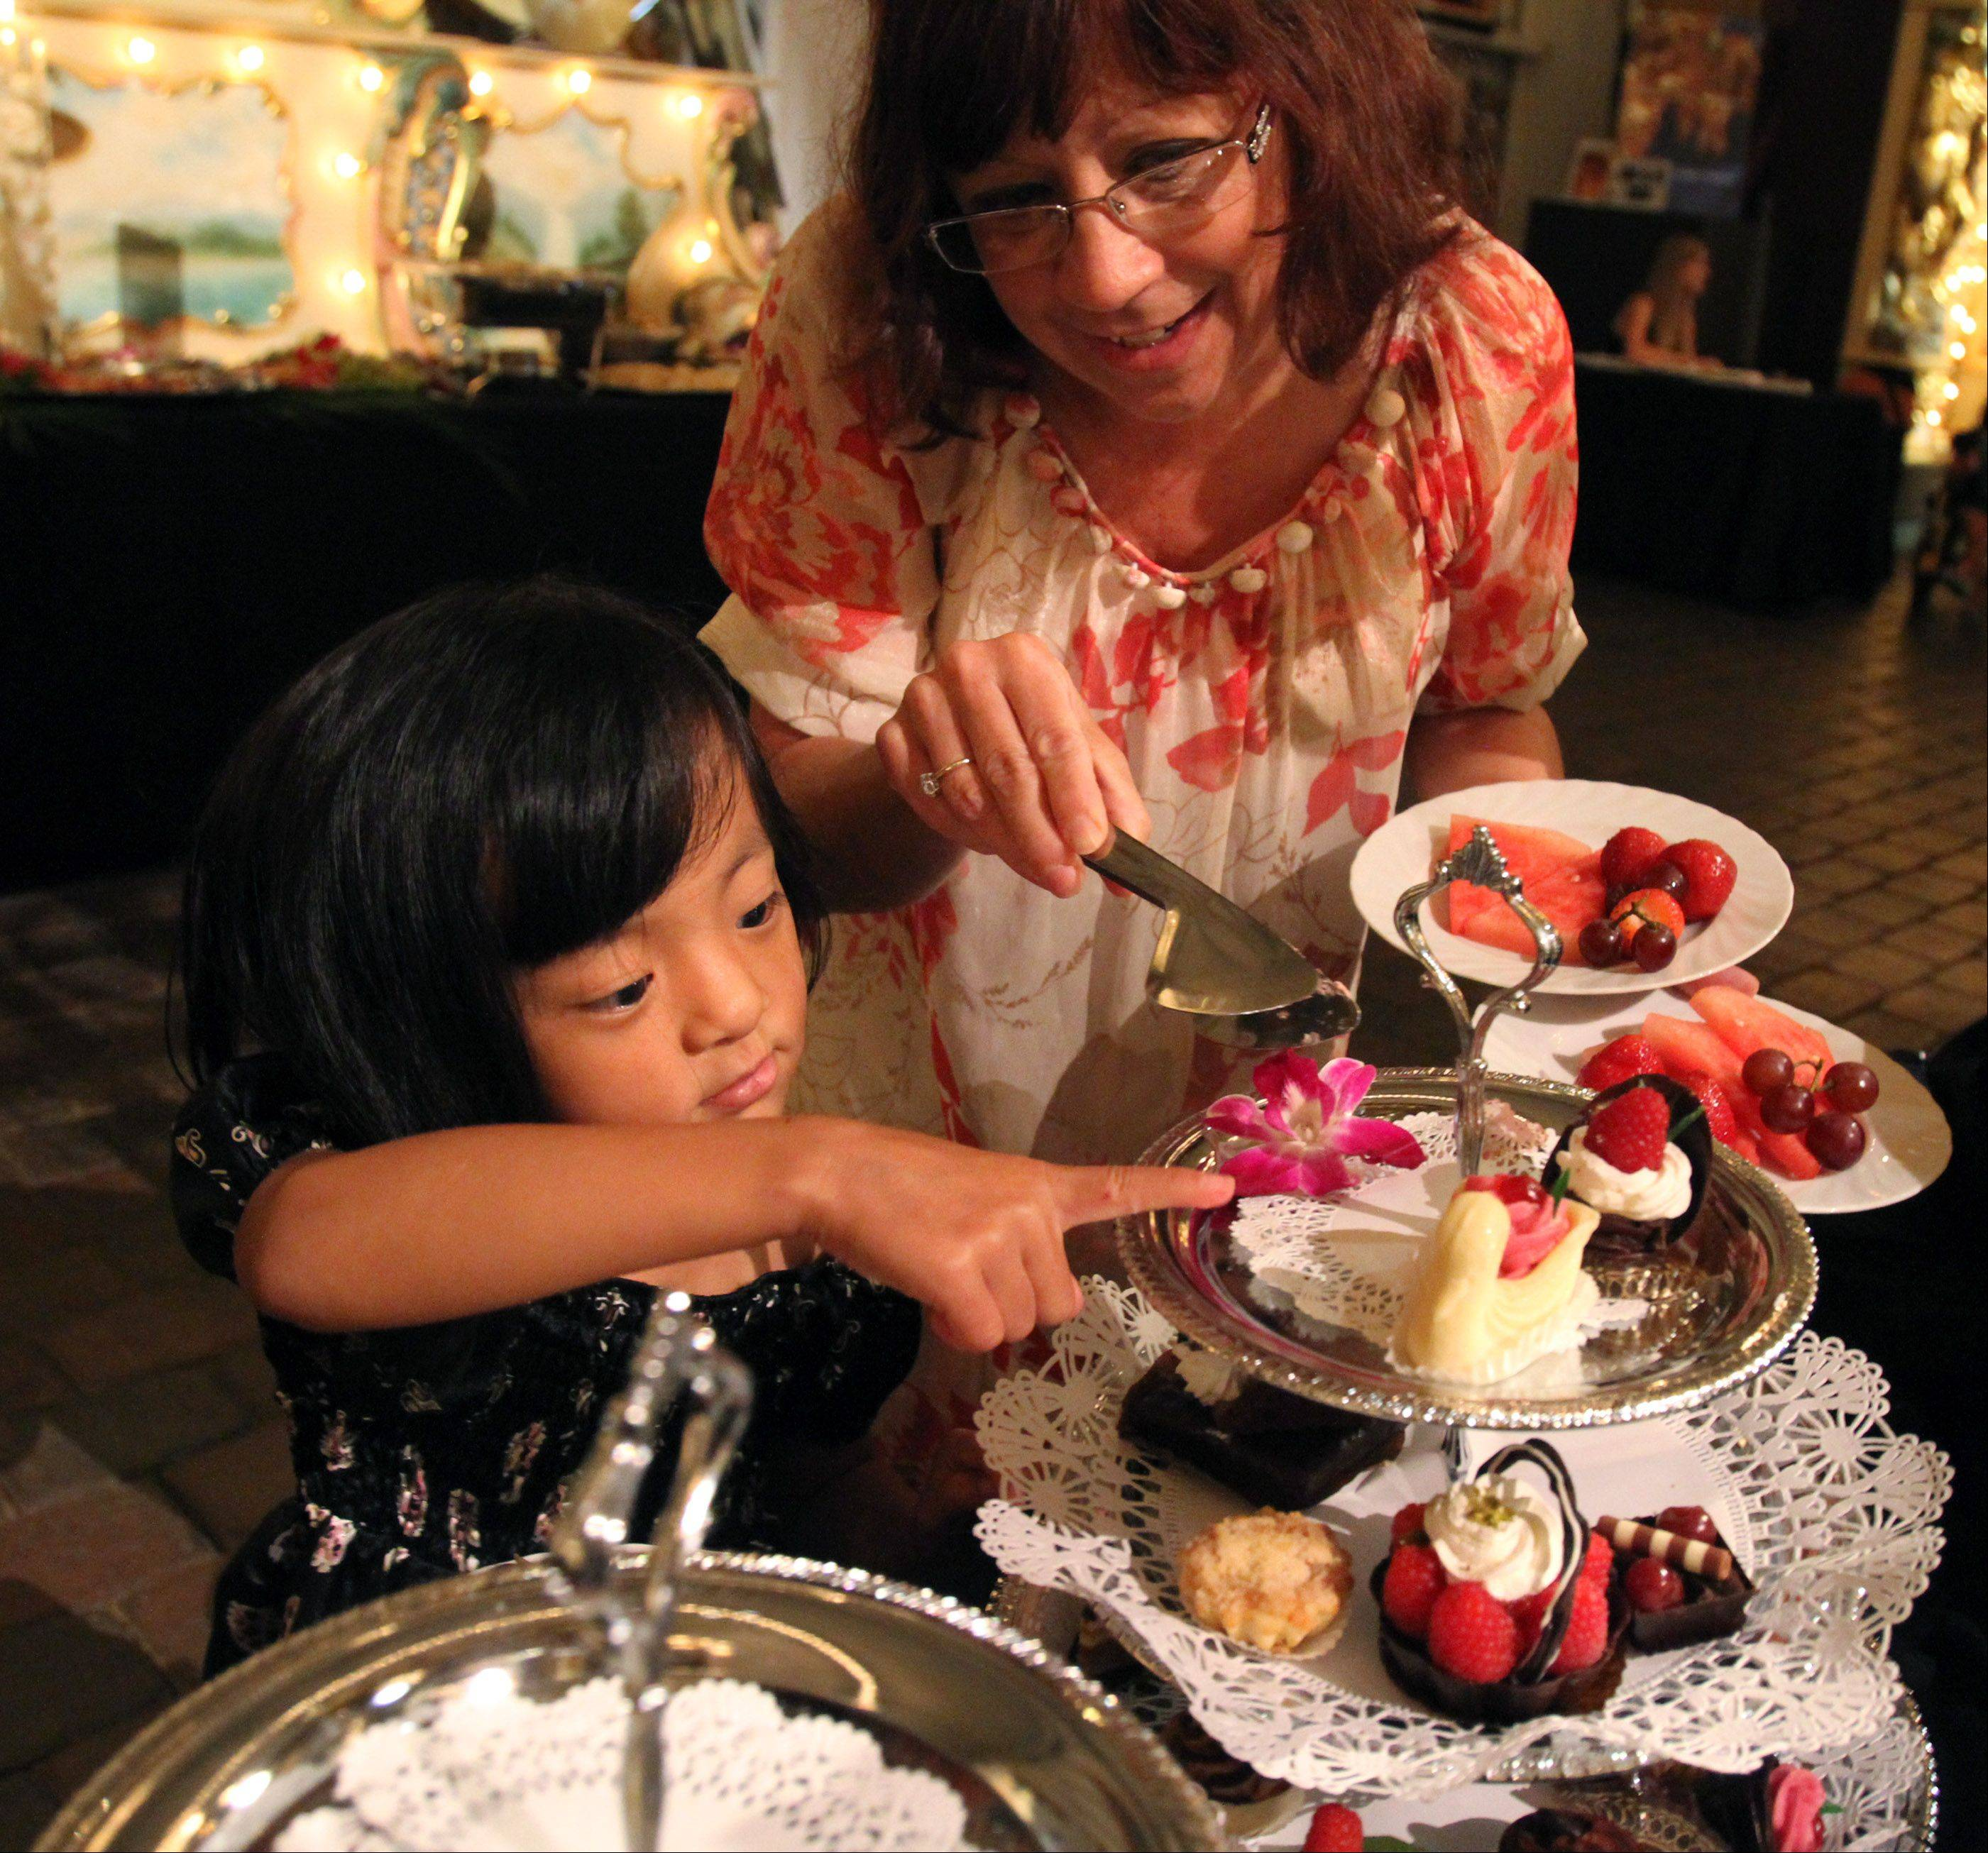 Lydia Wyse points out a dessert she'd like to try to her mother, Cheryl Wyse, at last year's fundraiser.